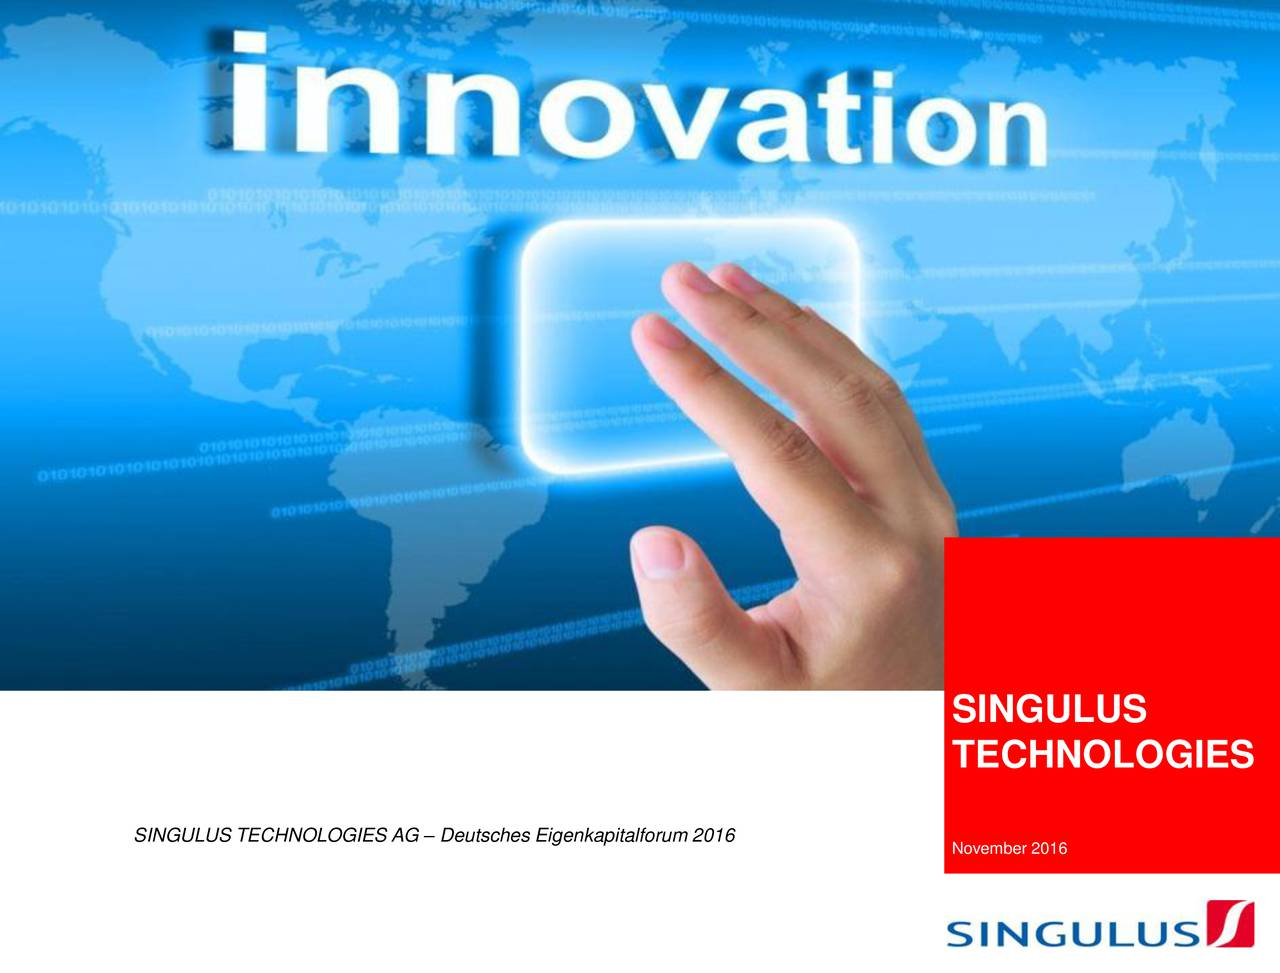 TECHNOLOGIES SINGULUS TECHNOLOGIES AG  Deutsches Eigenkapitalforum 2016 November 2016